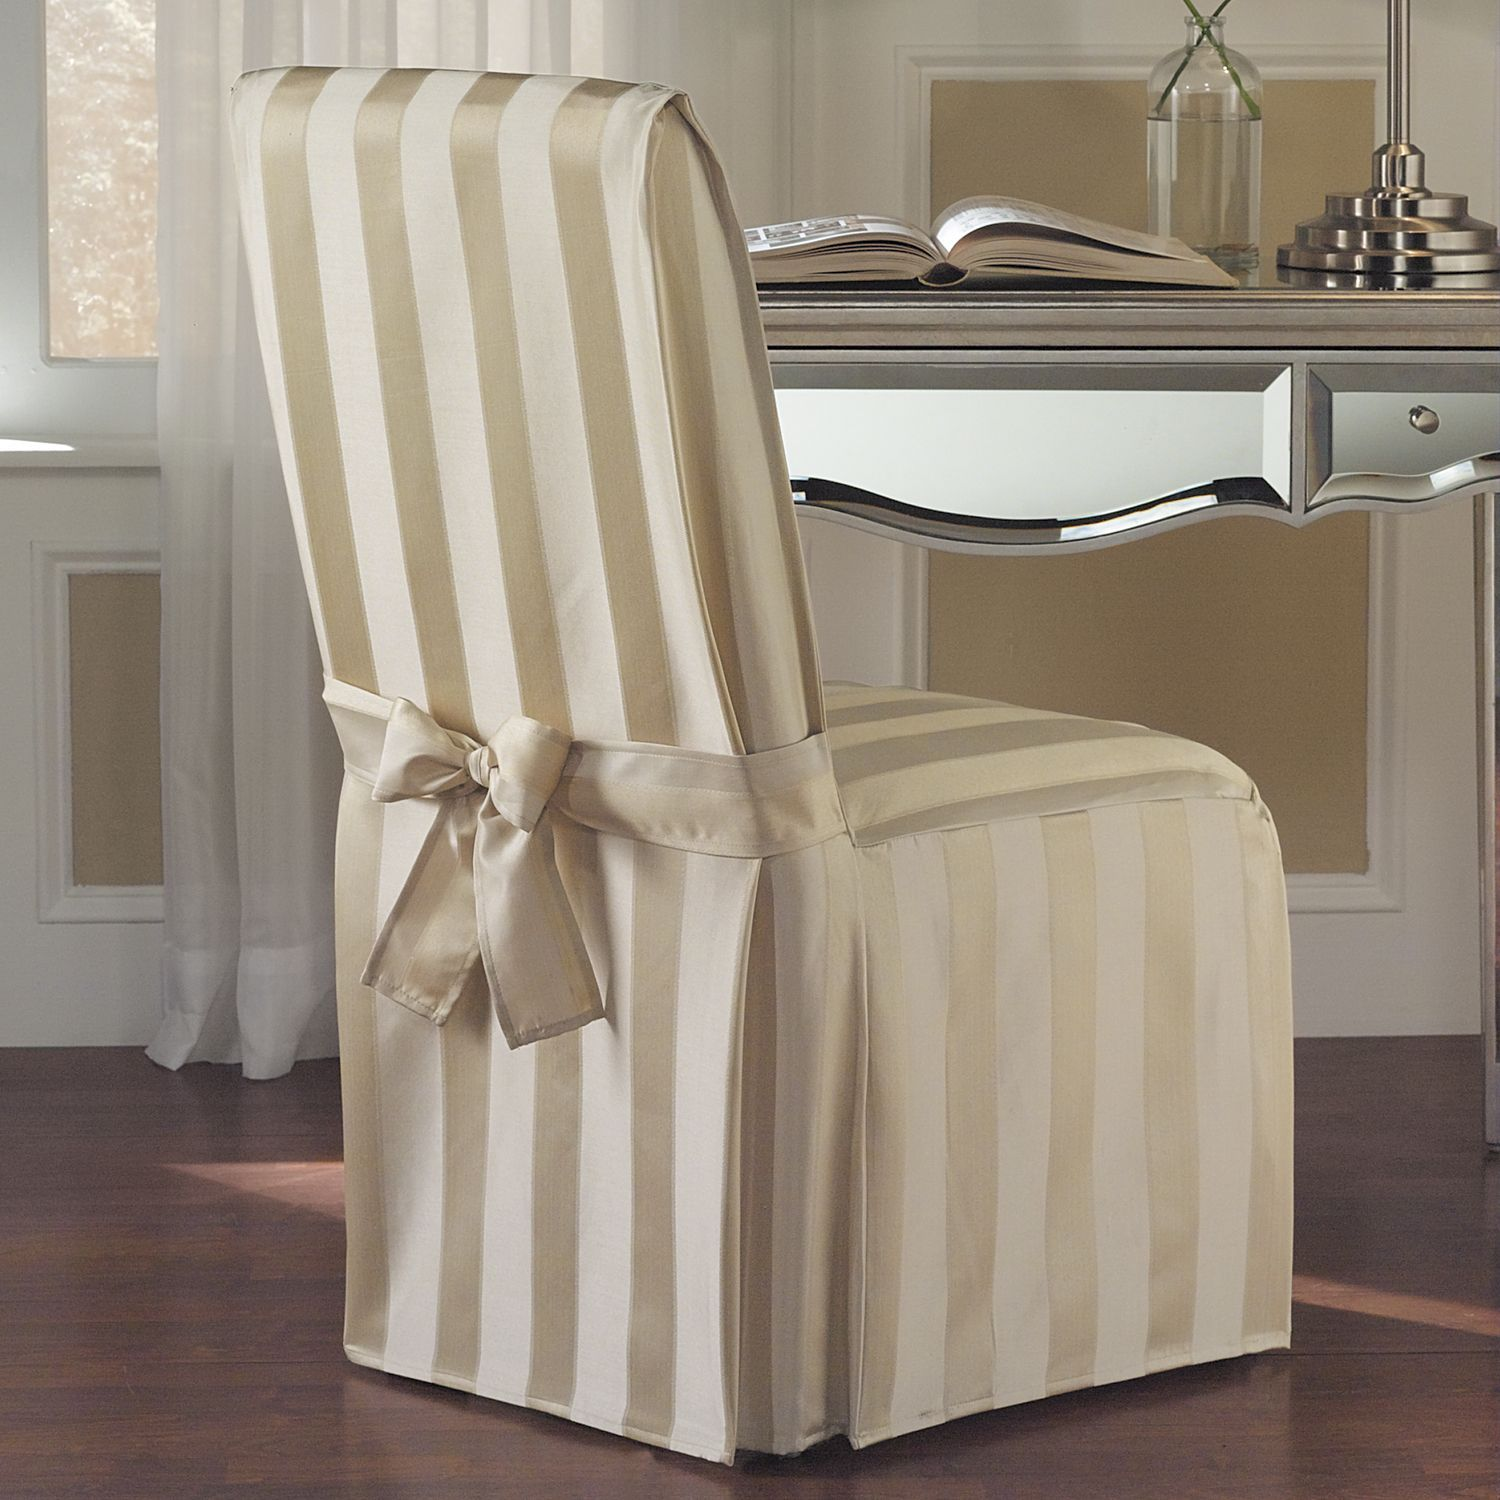 United Curtain Madison Dining Room Chair Cover 19 By 18 Gold